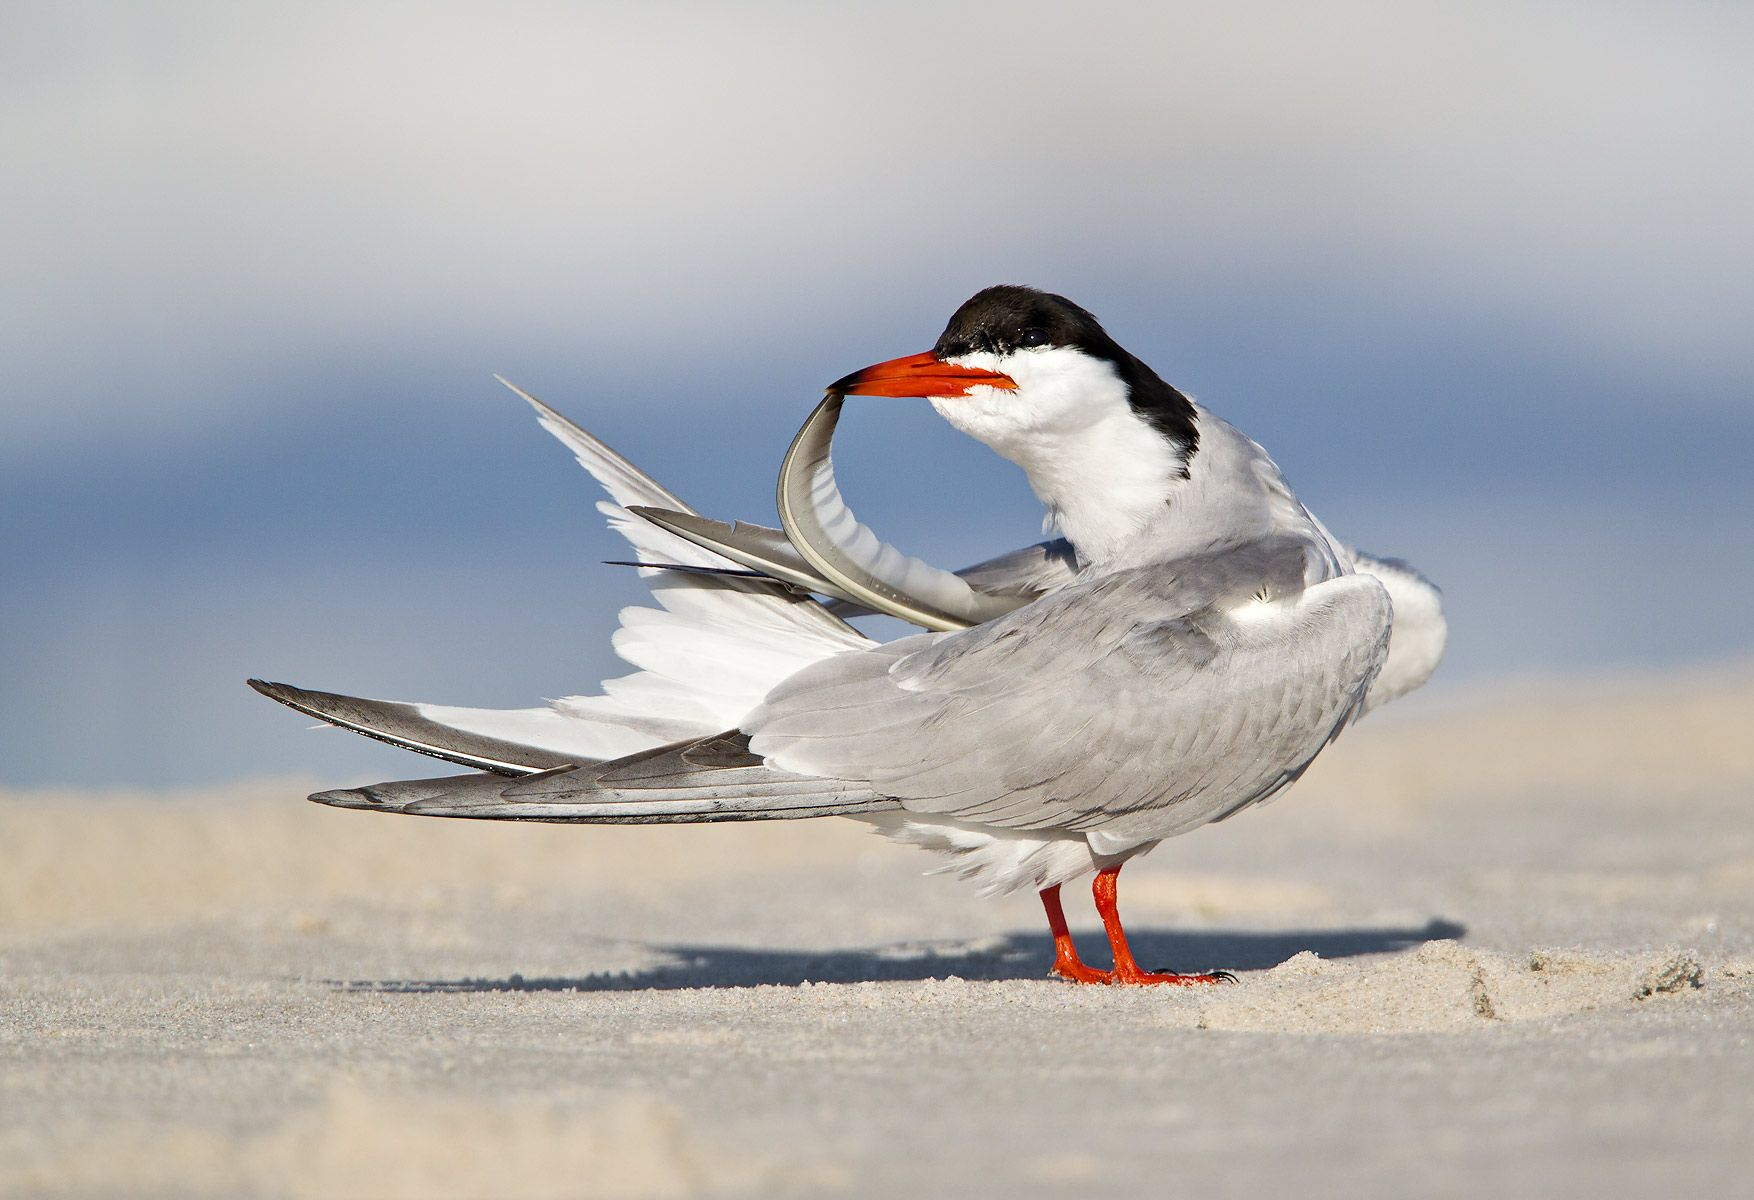 Common-tern-preening-with-feathertop-in-beak-_M7E8567-Nickerson-Beach,-NY.jpg